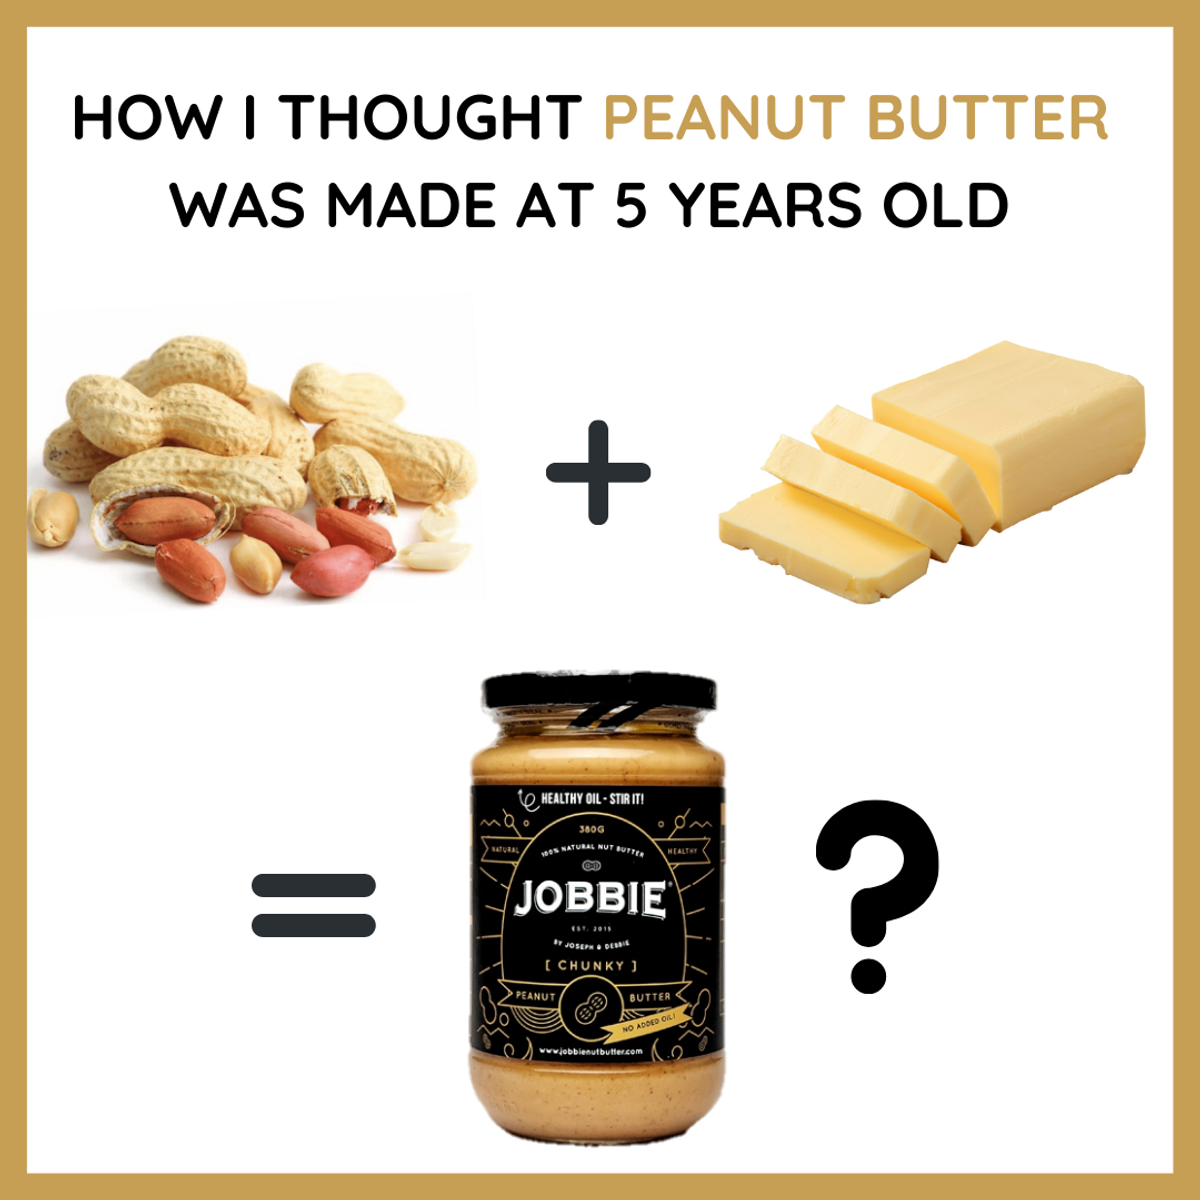 Wait, WHAT??! There is actually NO BUTTER in Peanut Butter???